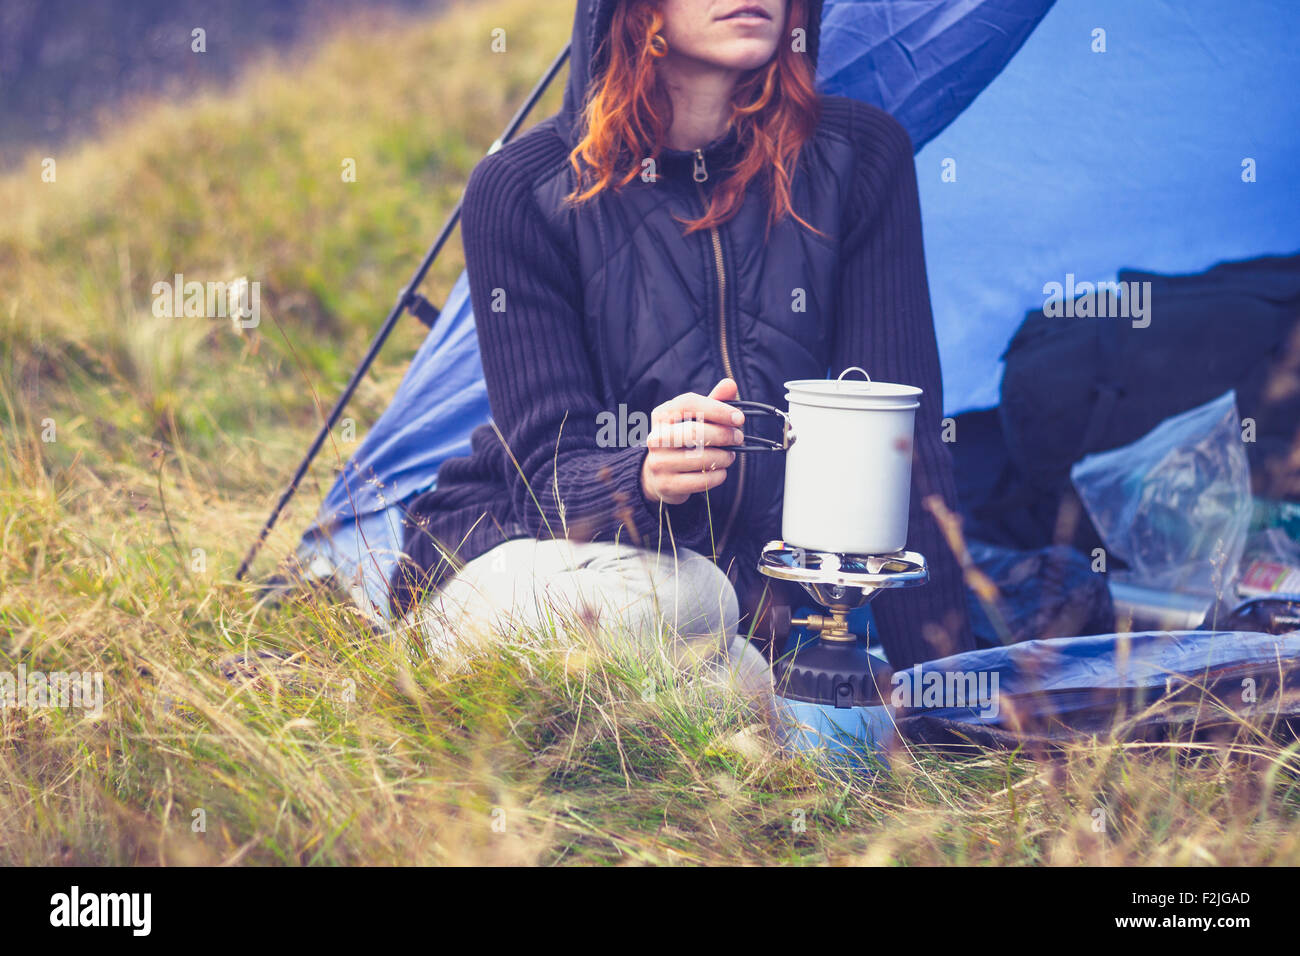 Young woman in tent cooking with camping stove - Stock Image